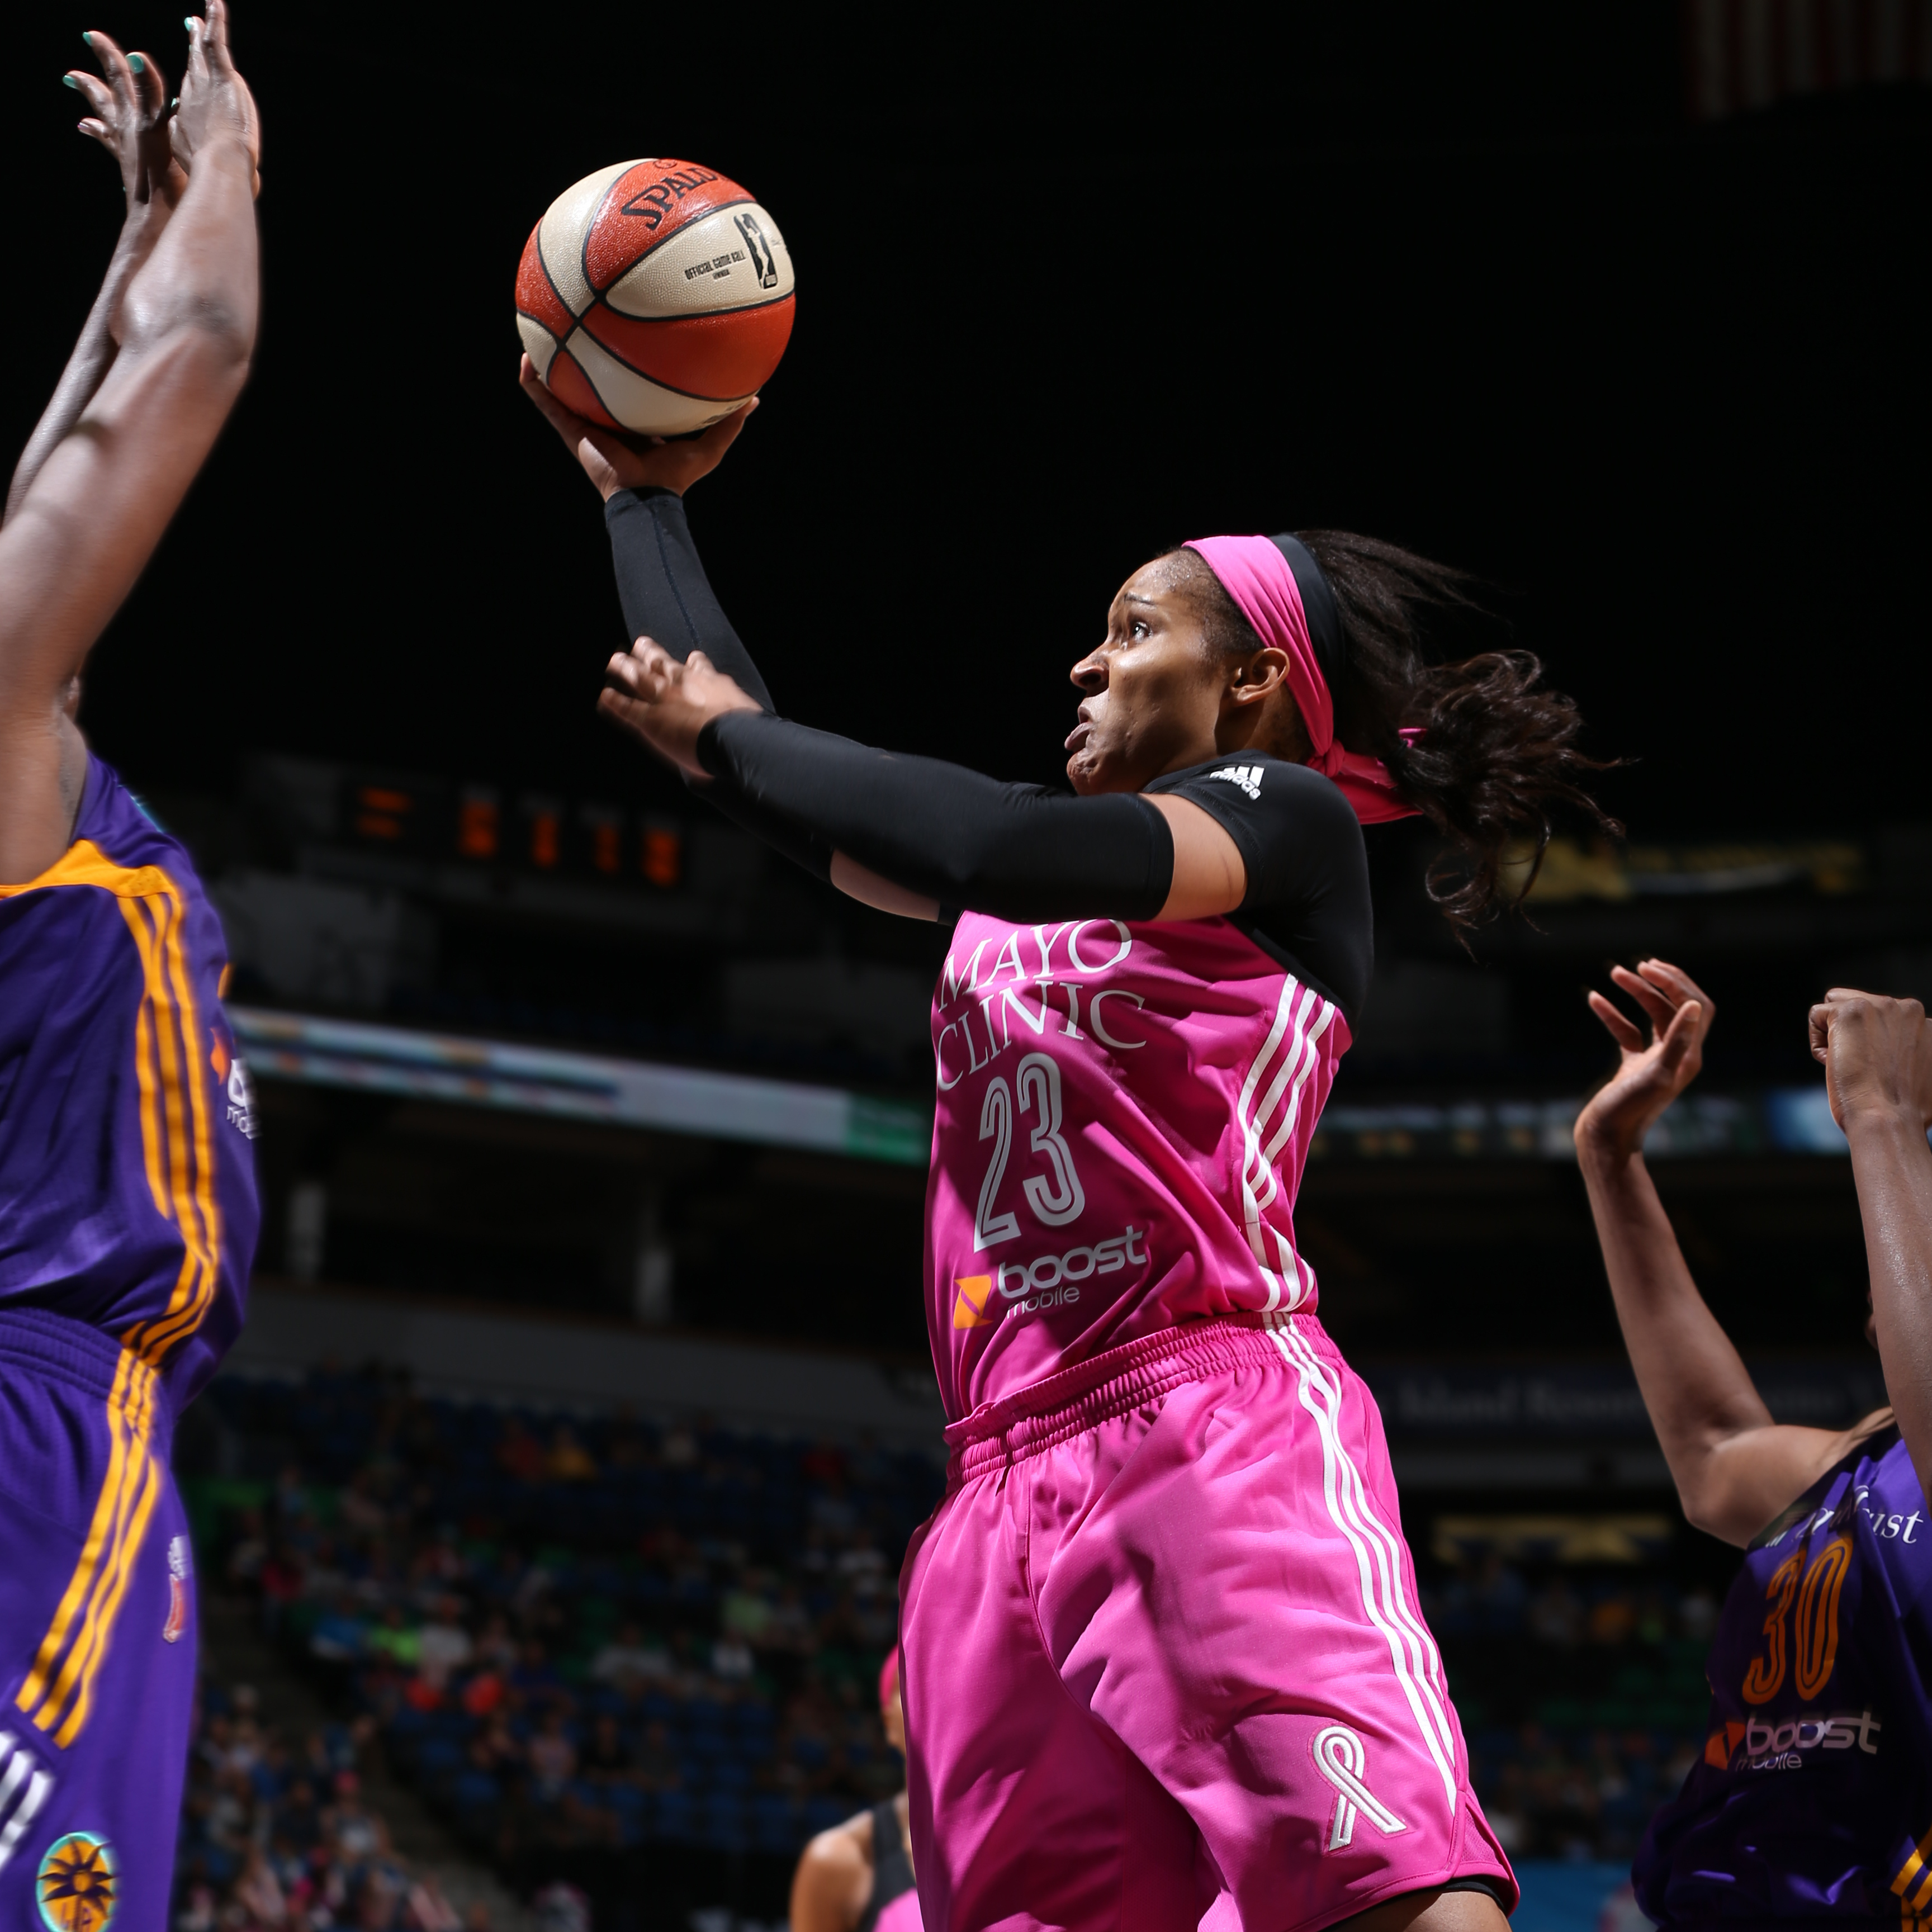 Lynx forward Maya Moore got back to her 20 point ways when the Lynx and Sparks met for the fourth and final time during the regular seaon, scoring 20 points. Moore also added five rebounds, two assists and two steals in Minnesota's 72-64 victory over the Sparks.